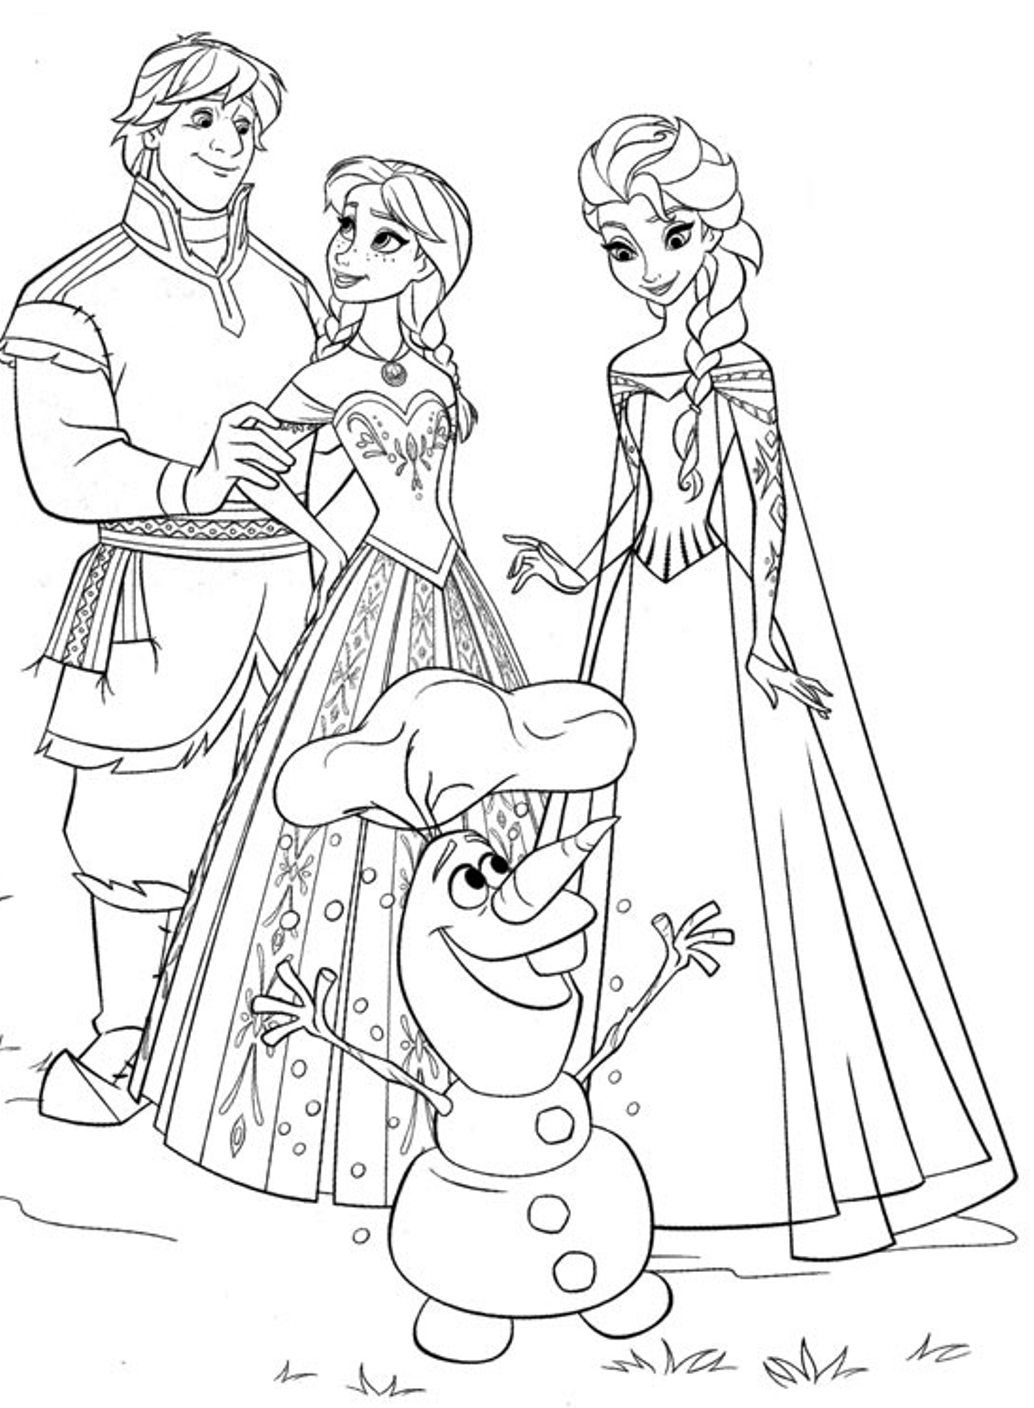 1034x1408 Frozen Coloring Pages To Print